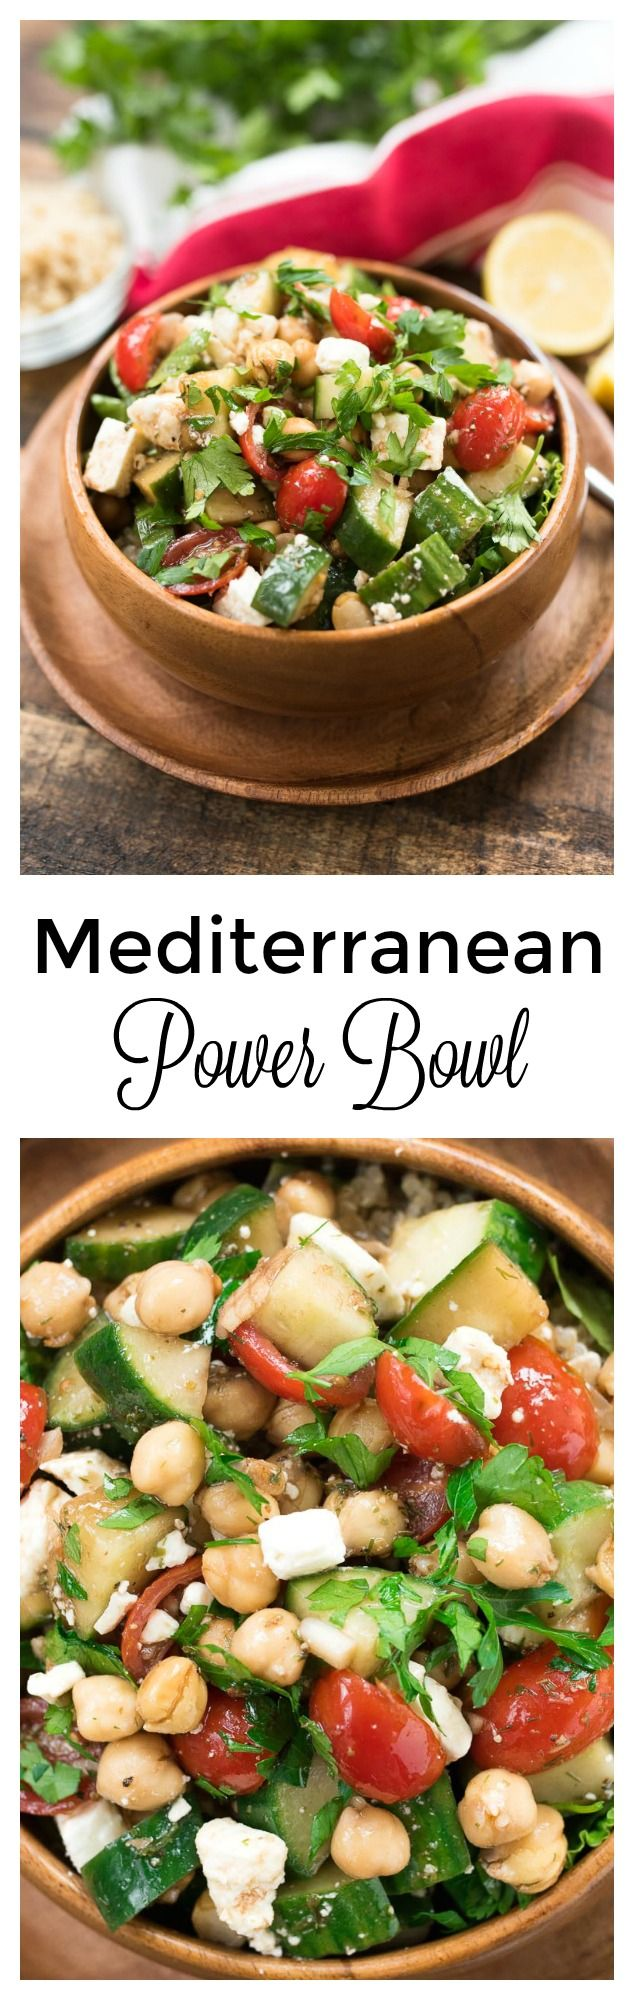 Mediterranean Power Bowl- a plant-based, protein and fiber packed lunch or dinner! | www.nutritiouseats.com